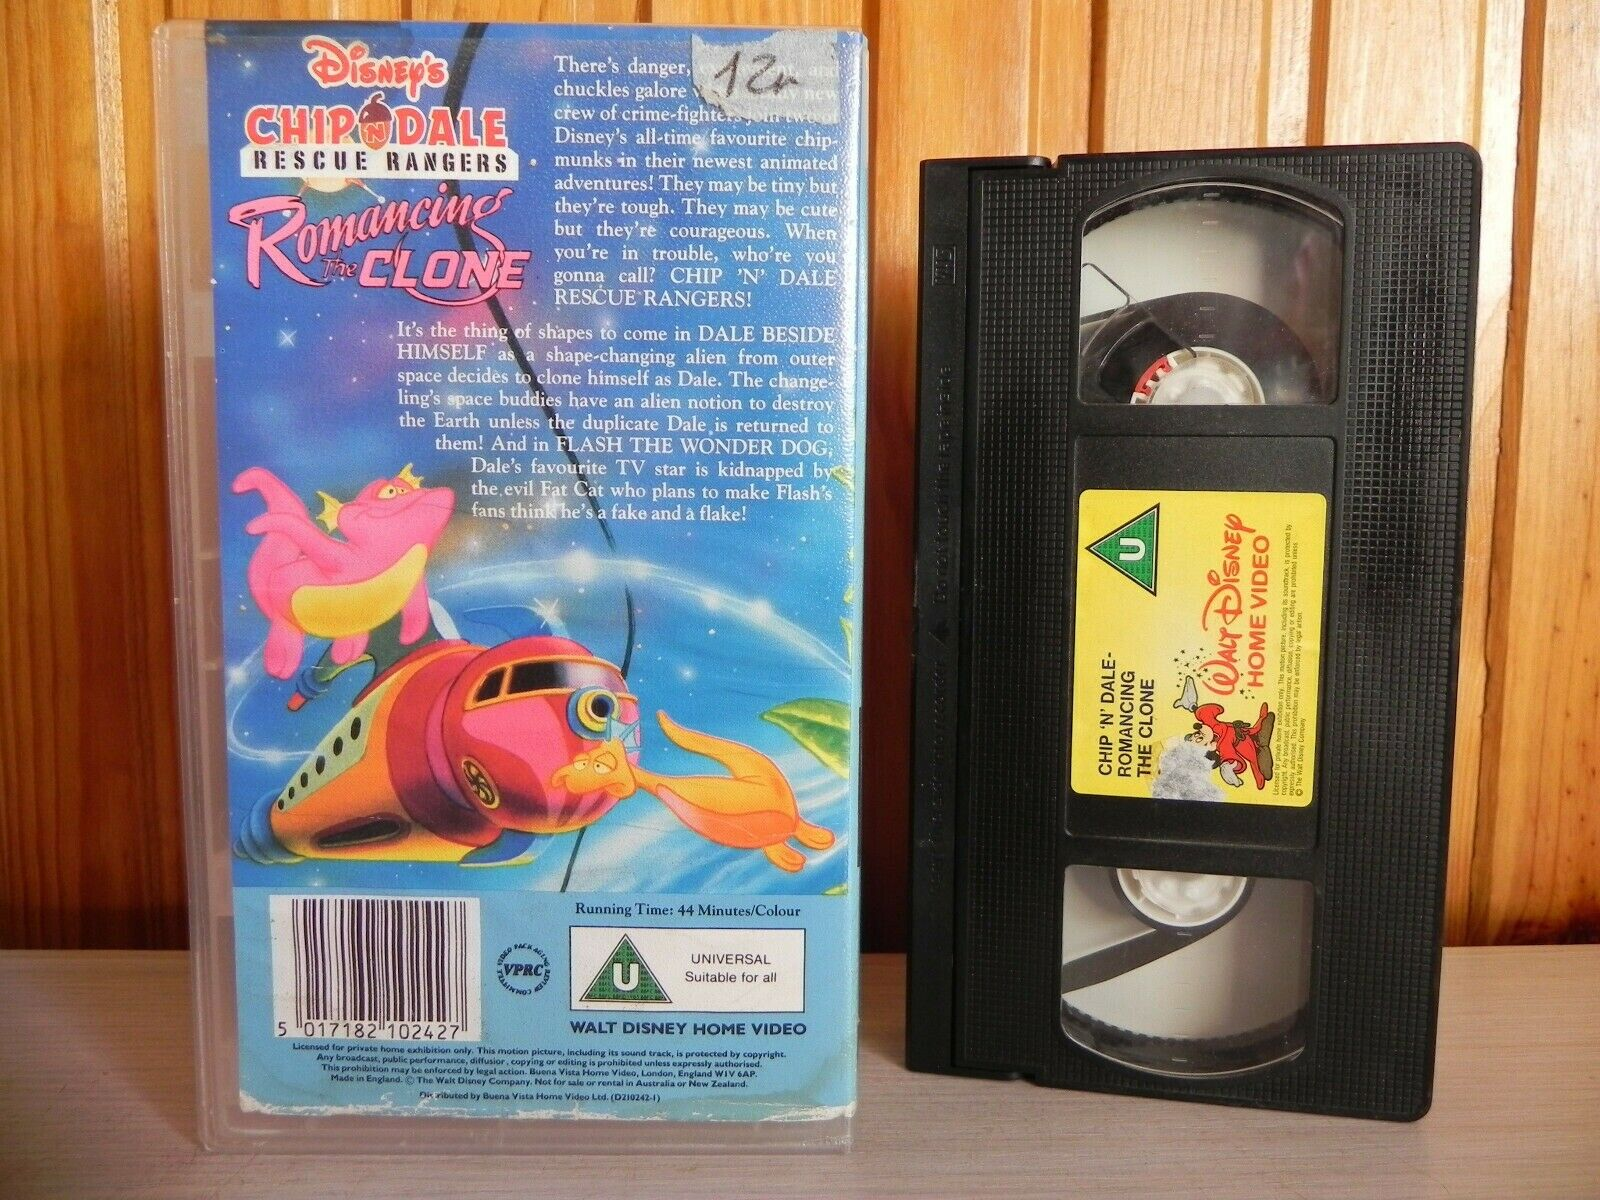 Chip 'n' Dale (Rescue Rangers): Romancing The Clone - Retro Kids Animation - Pal VHS